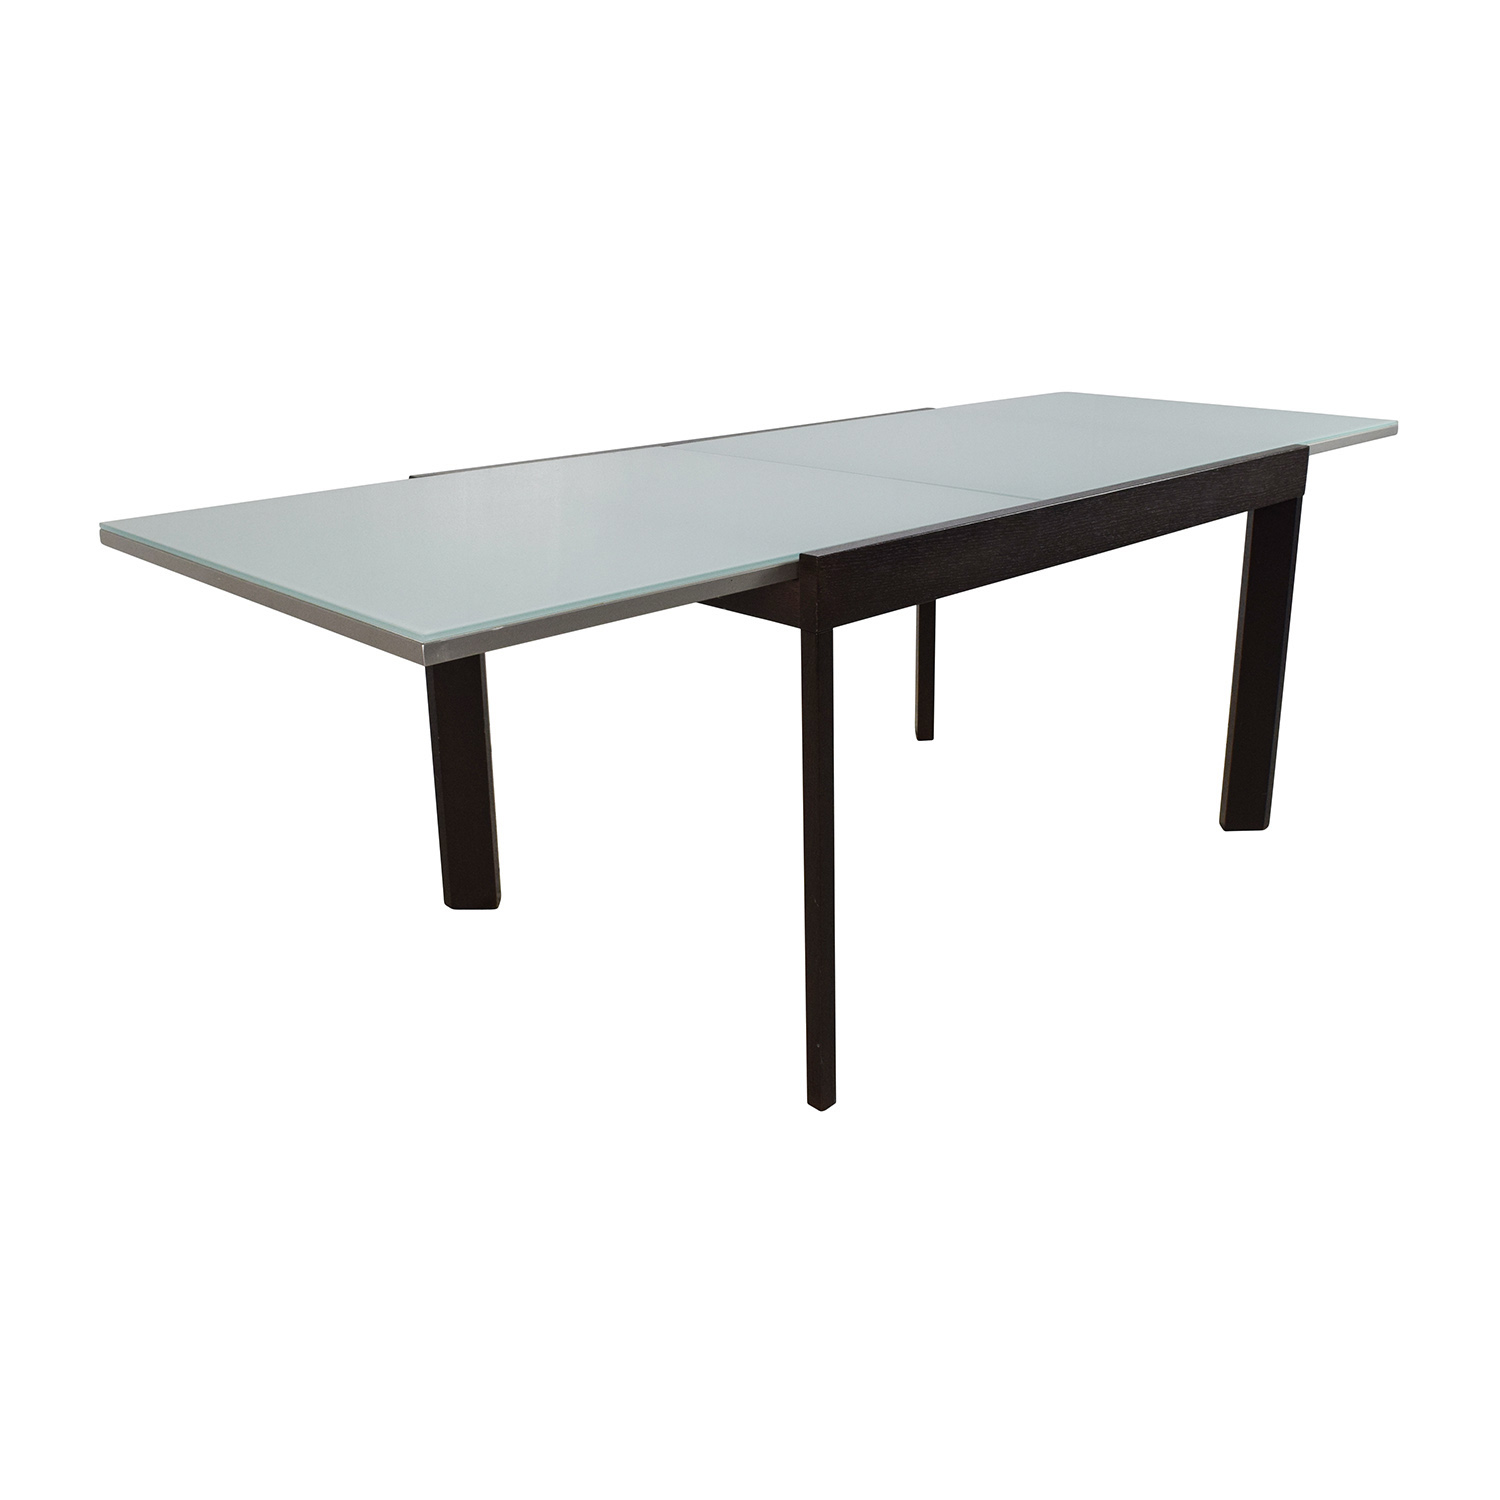 75 off calligaris calligaris extendable glass dining for Extendable glass dining table